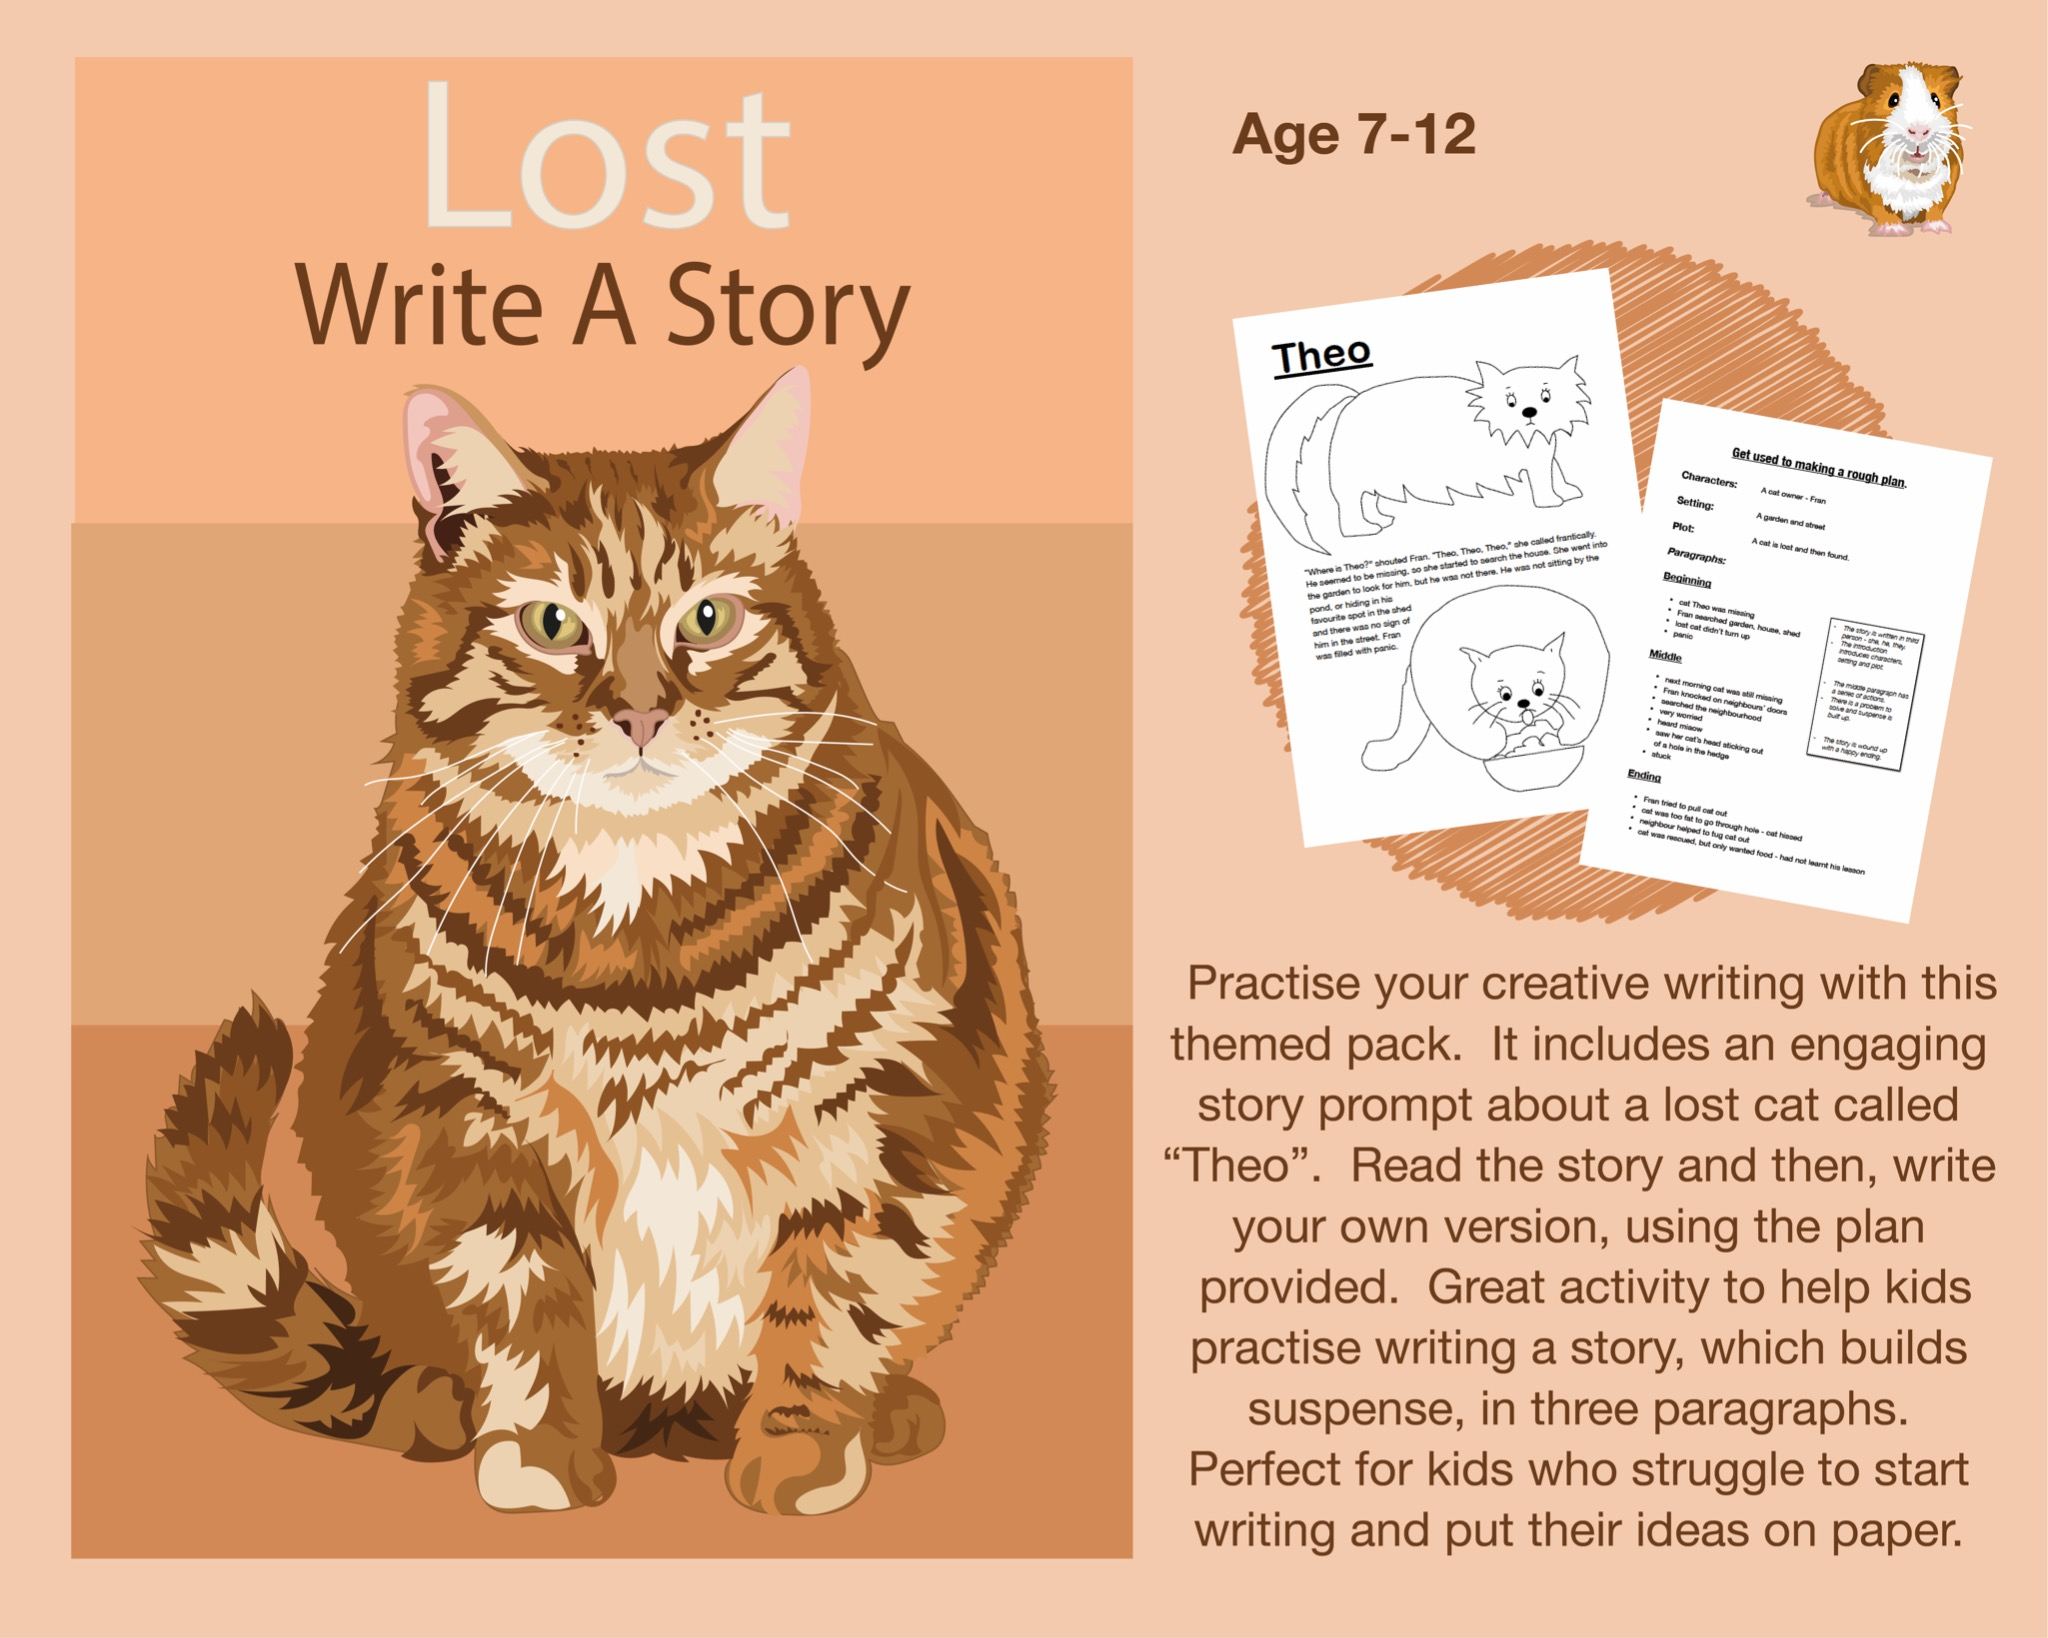 Write A Story Called 'Lost' (7-12 years)